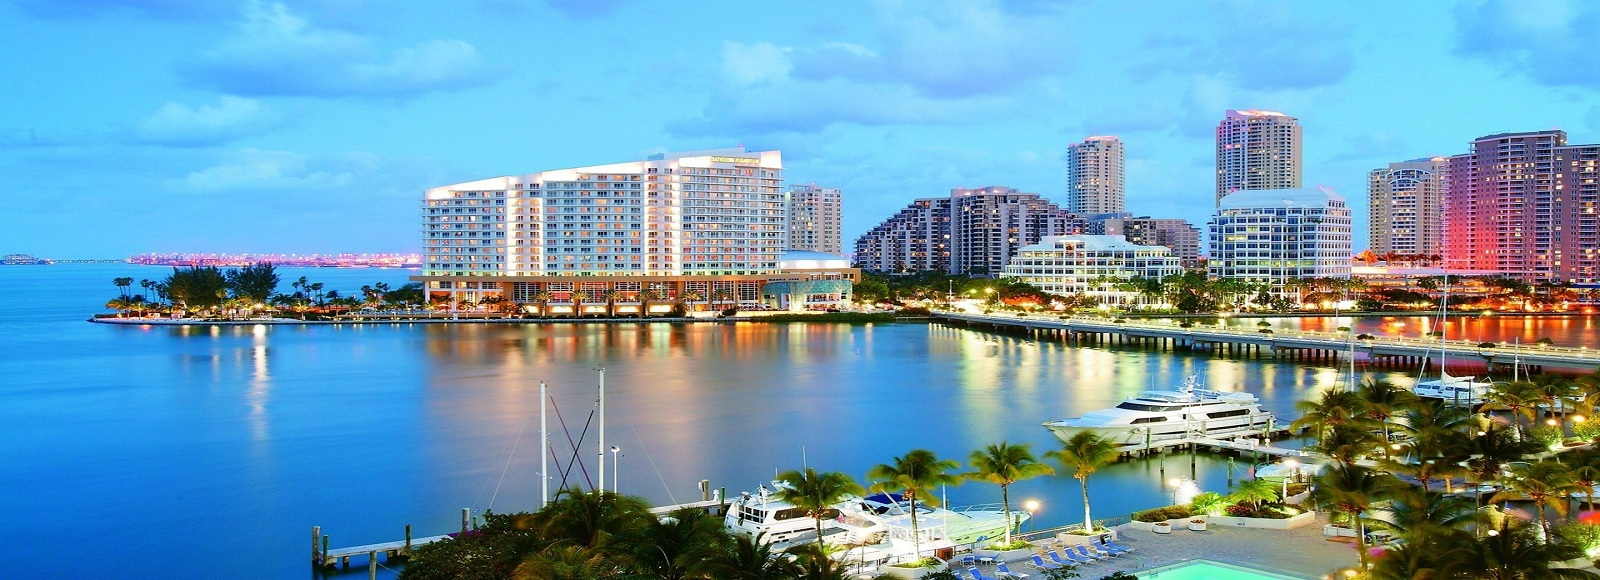 Hotel reservation in Miami Hotel offers in Miami